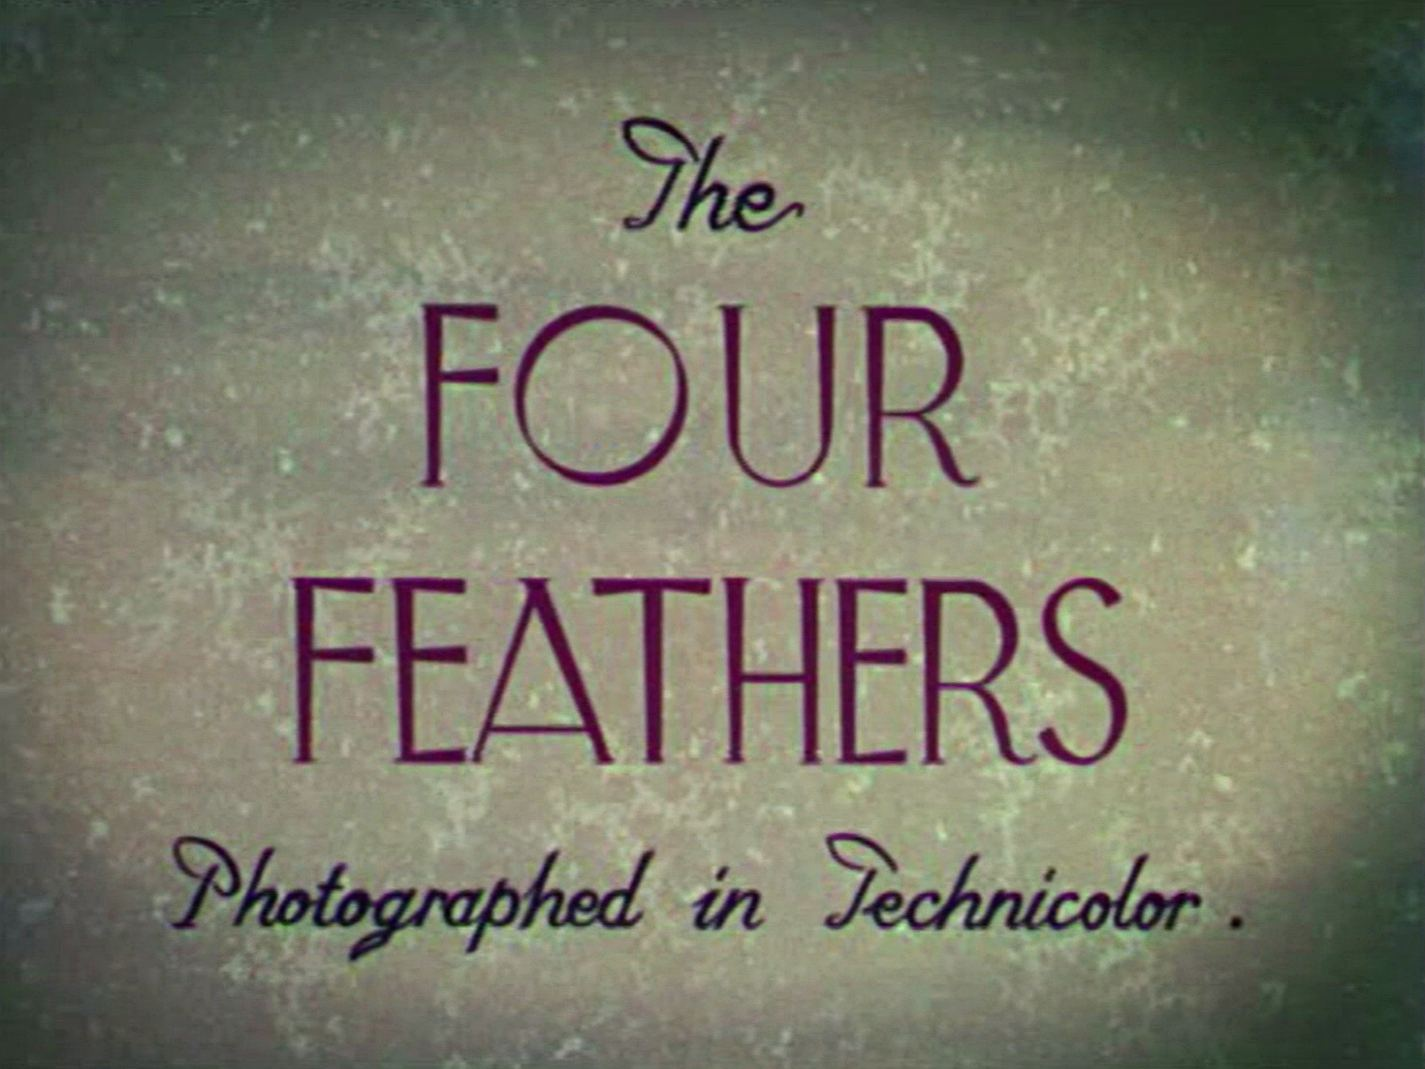 Main title from The Four Feathers (1939) (3)  Photographed in Technicolor